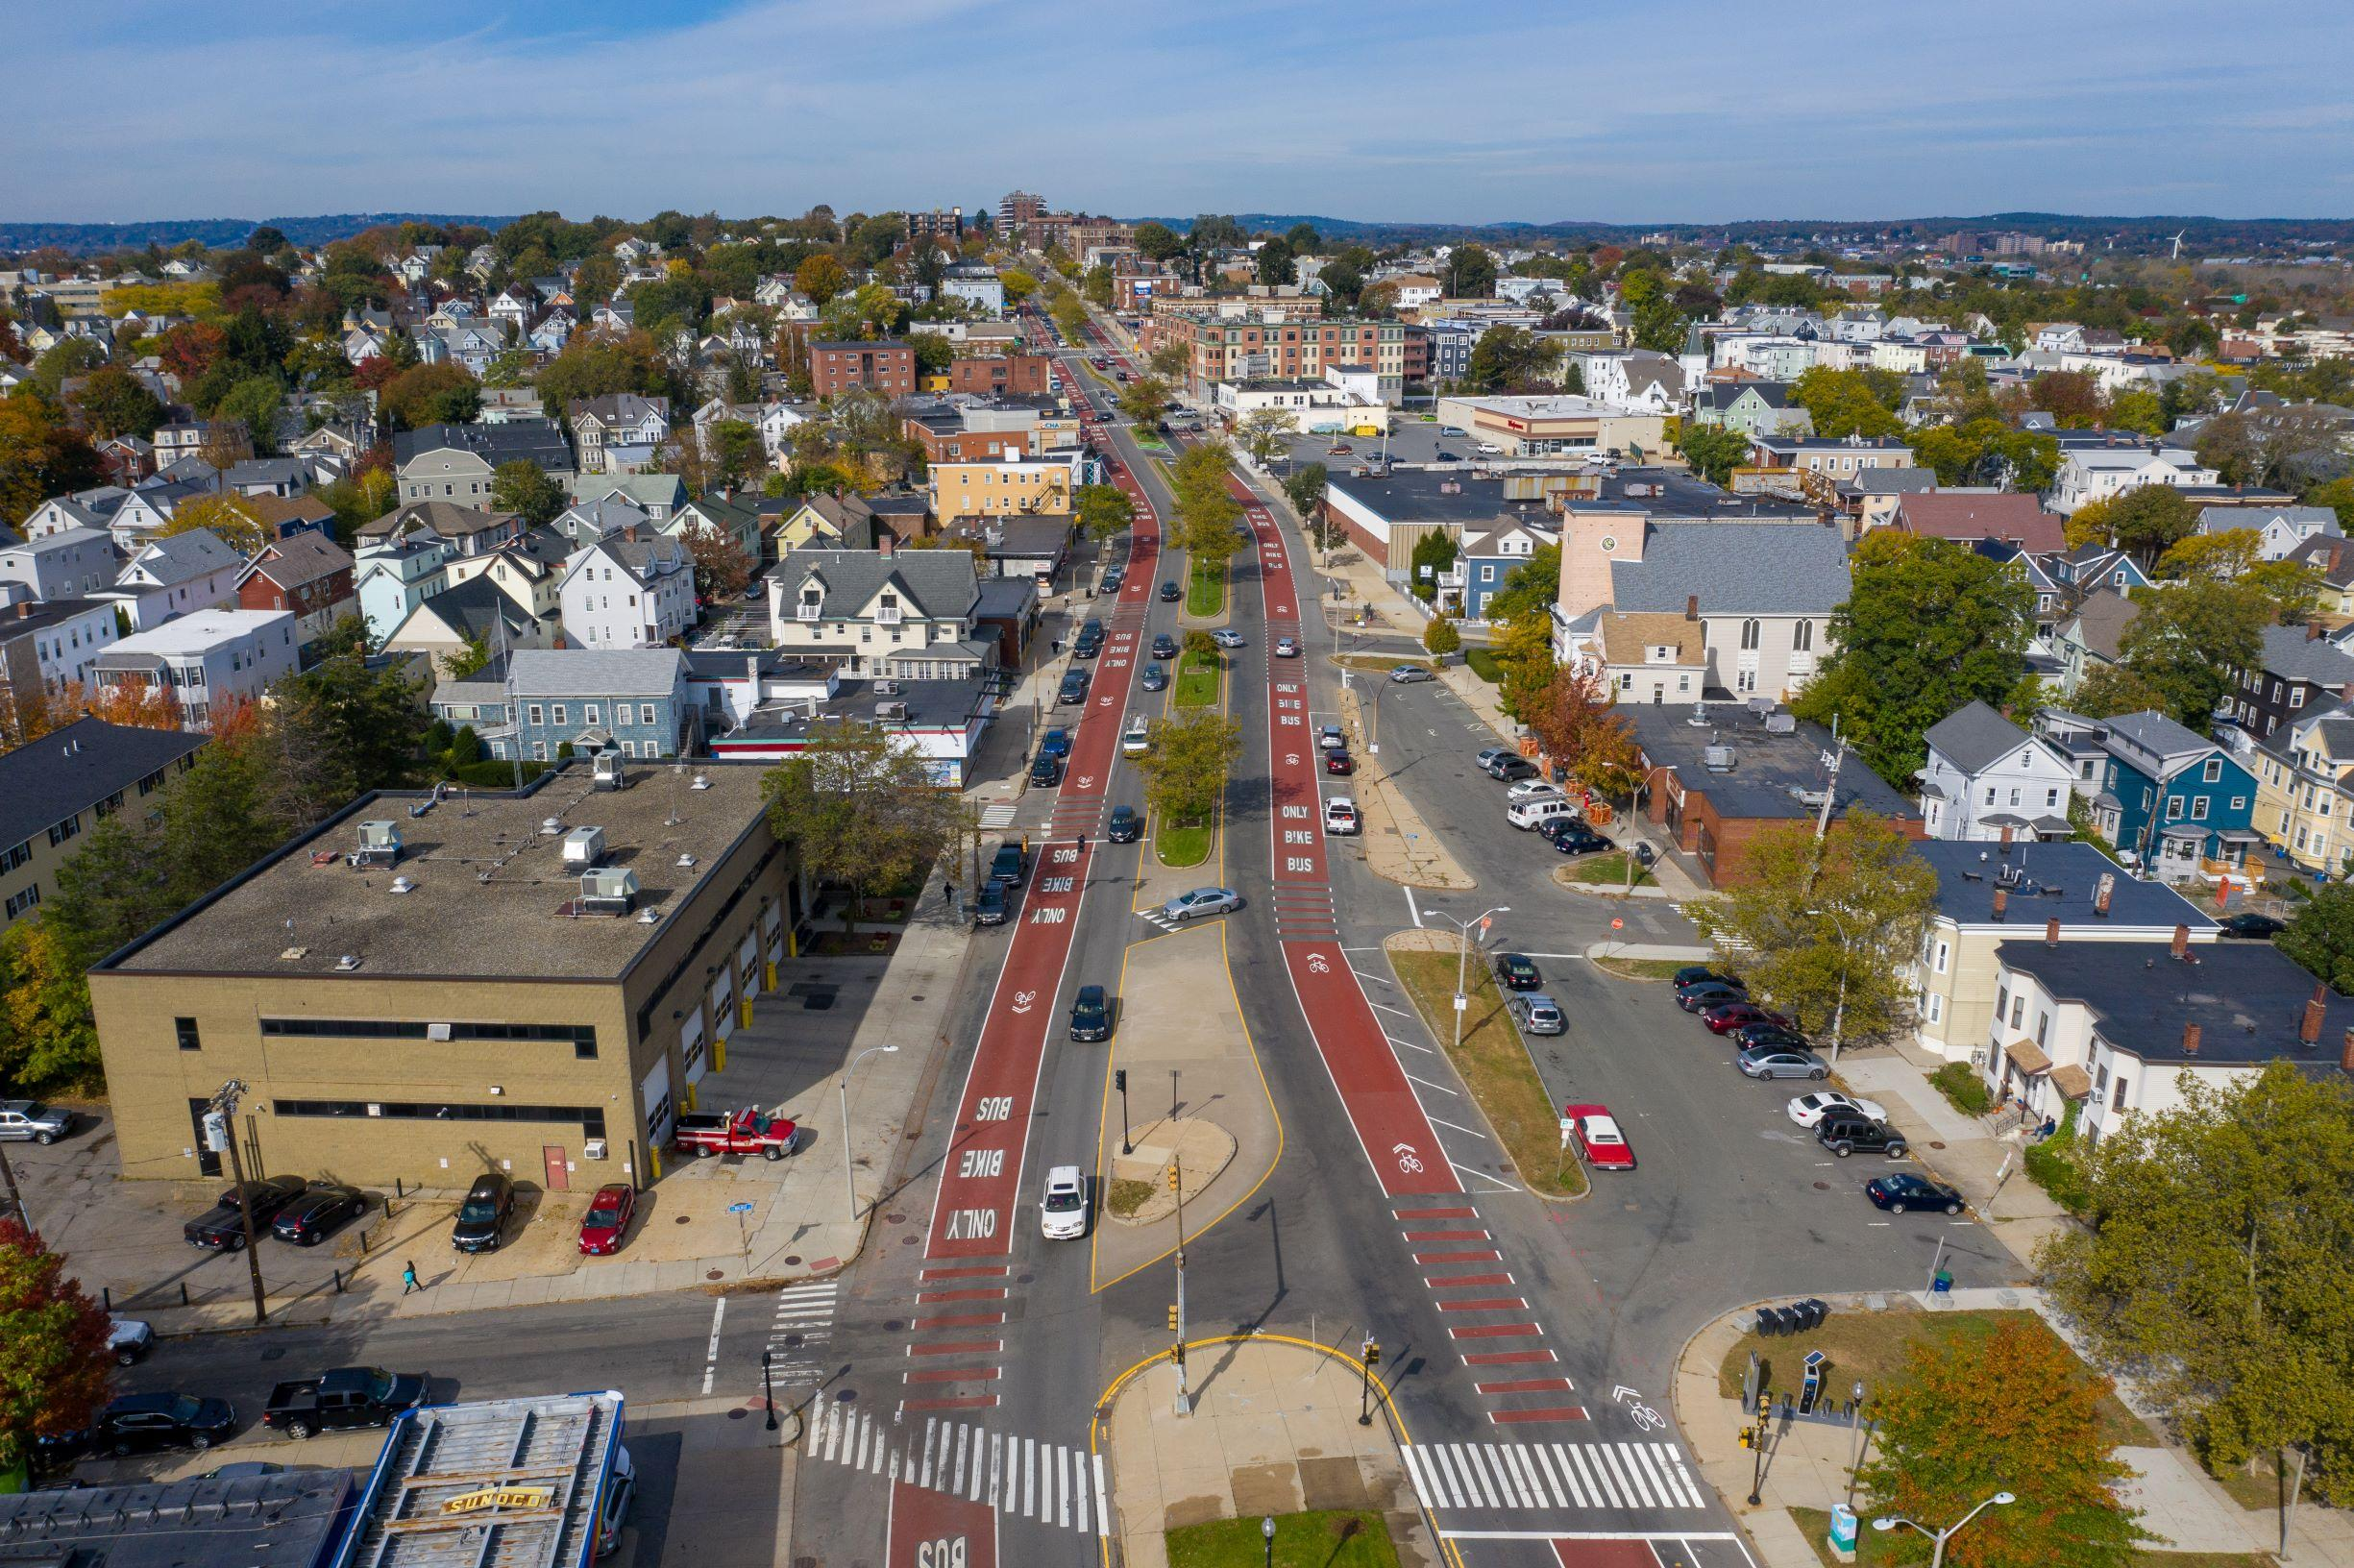 An overhead shot of Broadway in Somerville, where a bus lane has been implemented